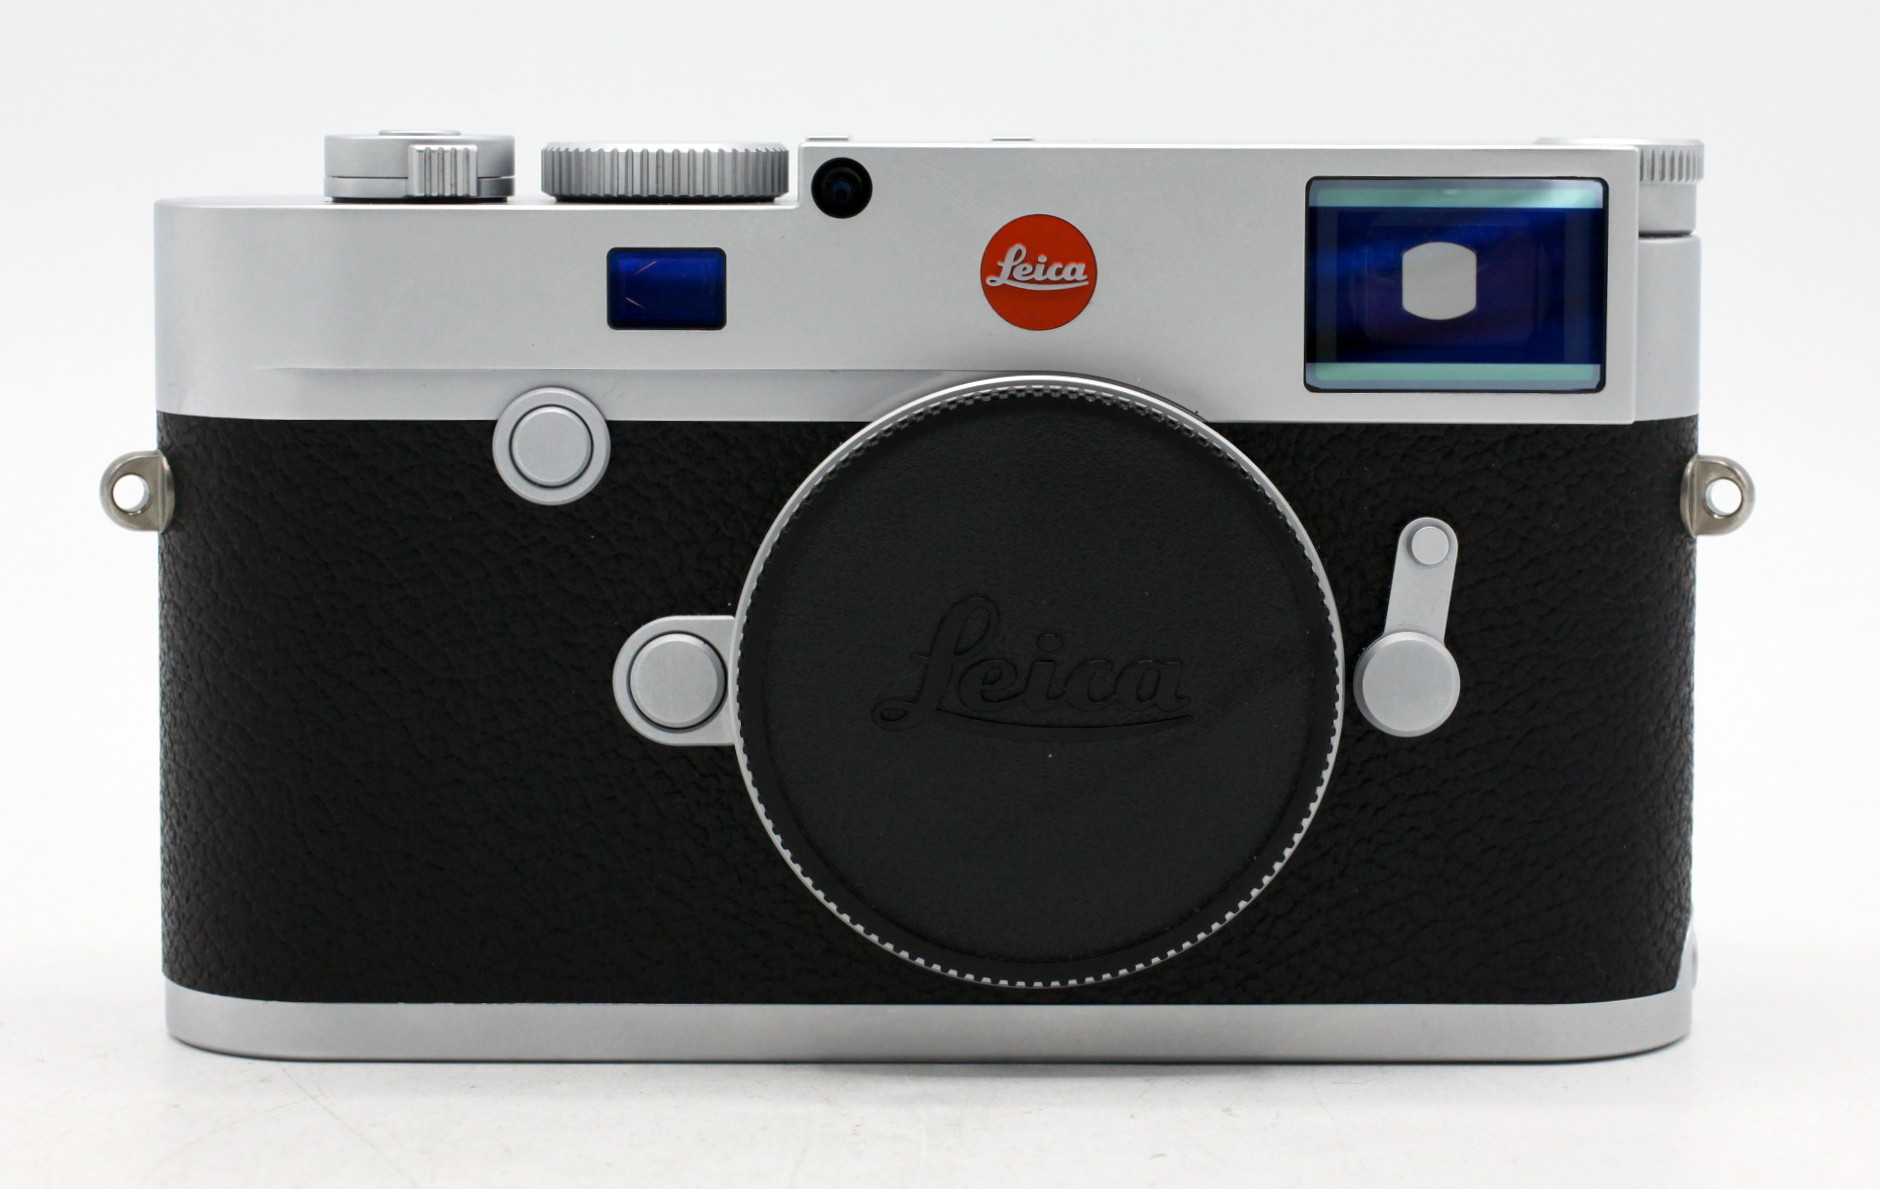 Leica M10 zilver body occasion (20001)